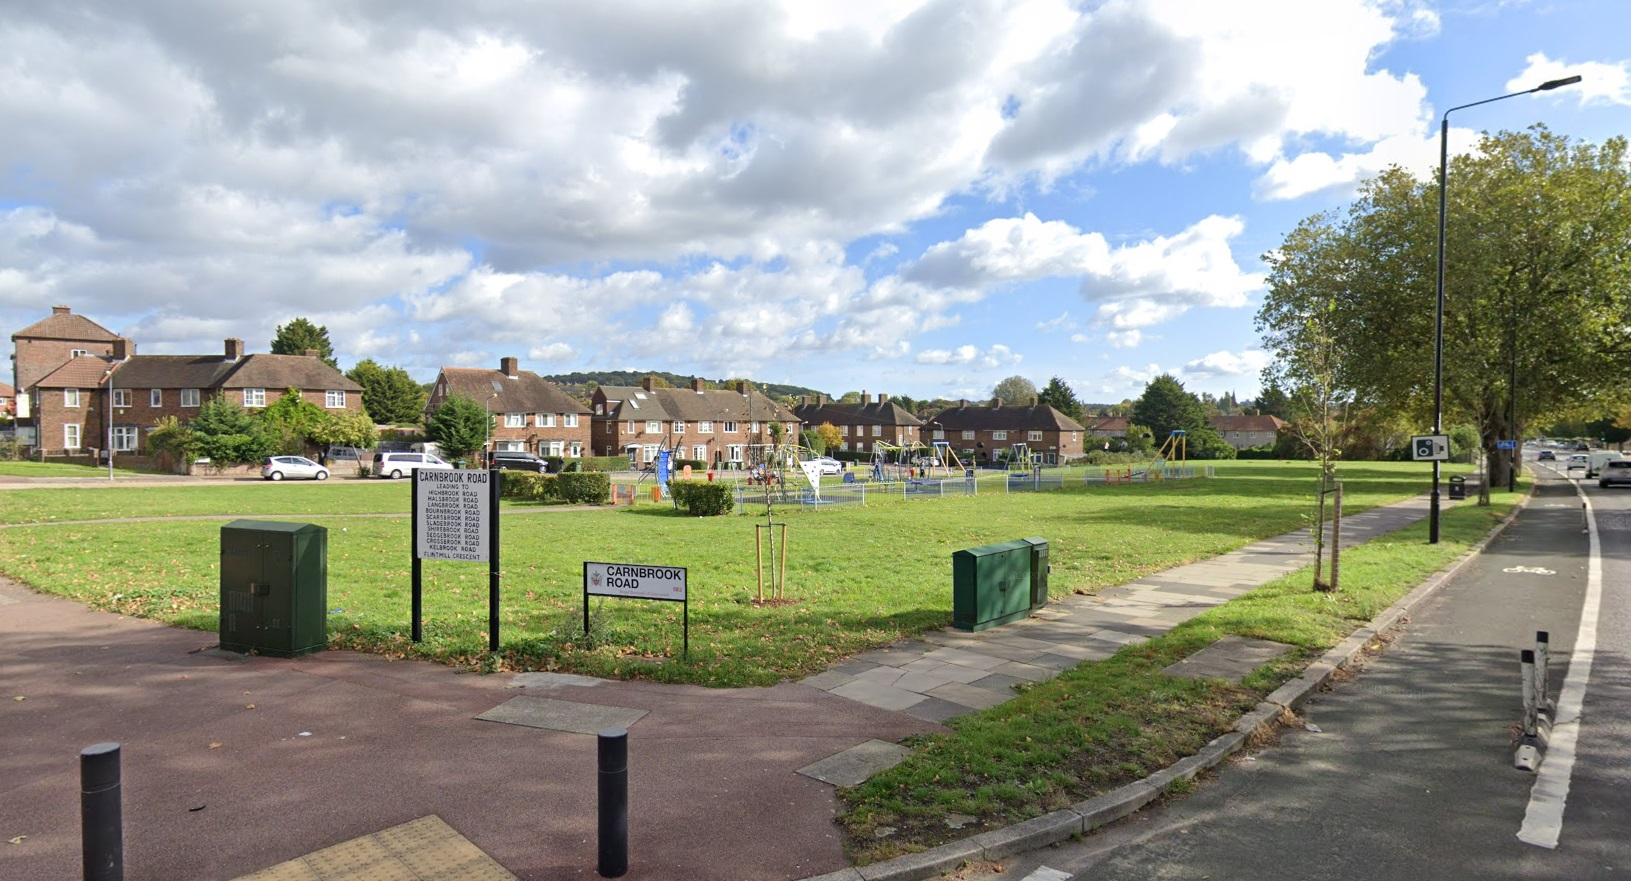 New council housing approved on Brook Estate in Kidbrooke-Eltham